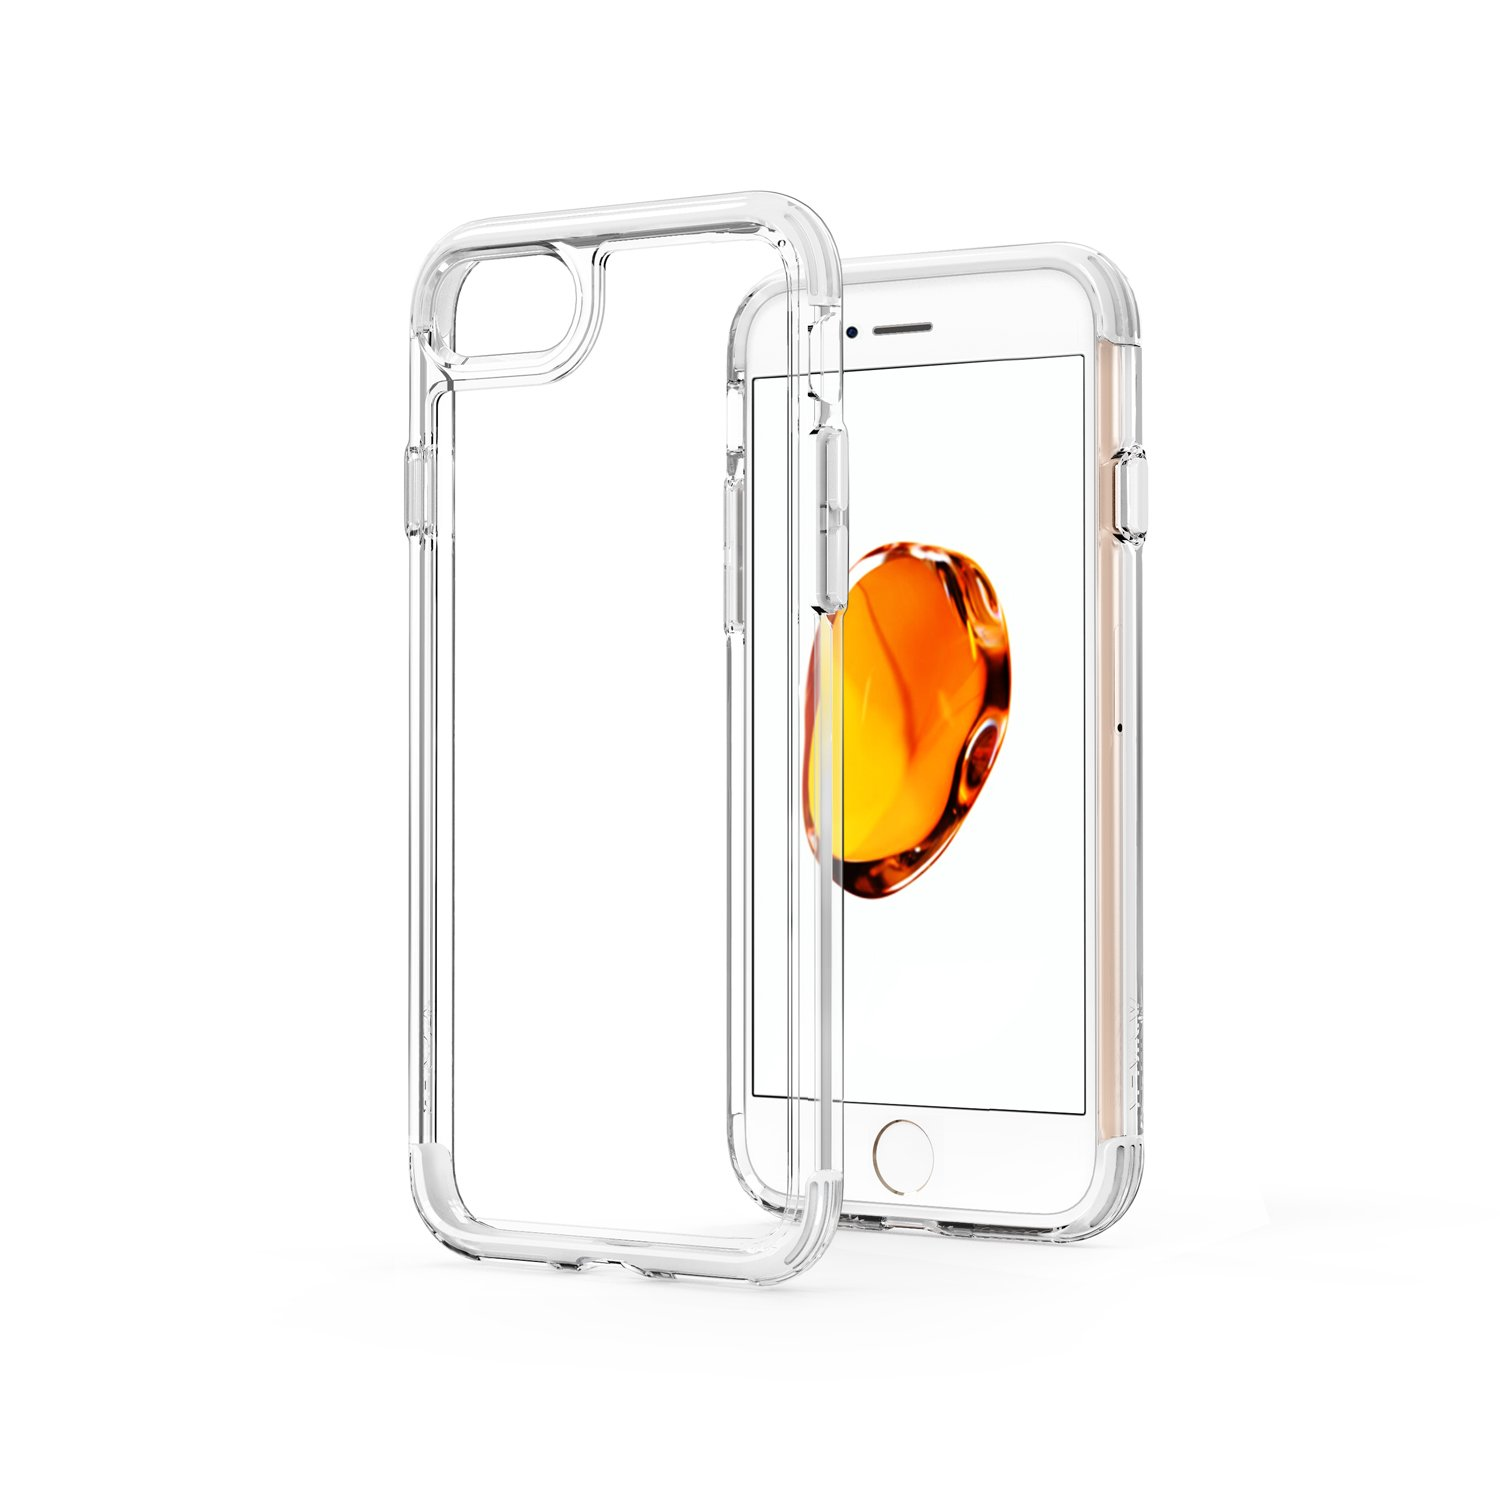 Iphone 7 Plus Case Anker Slimshell Slim & Light Protective Clear Case For Iph.. 10